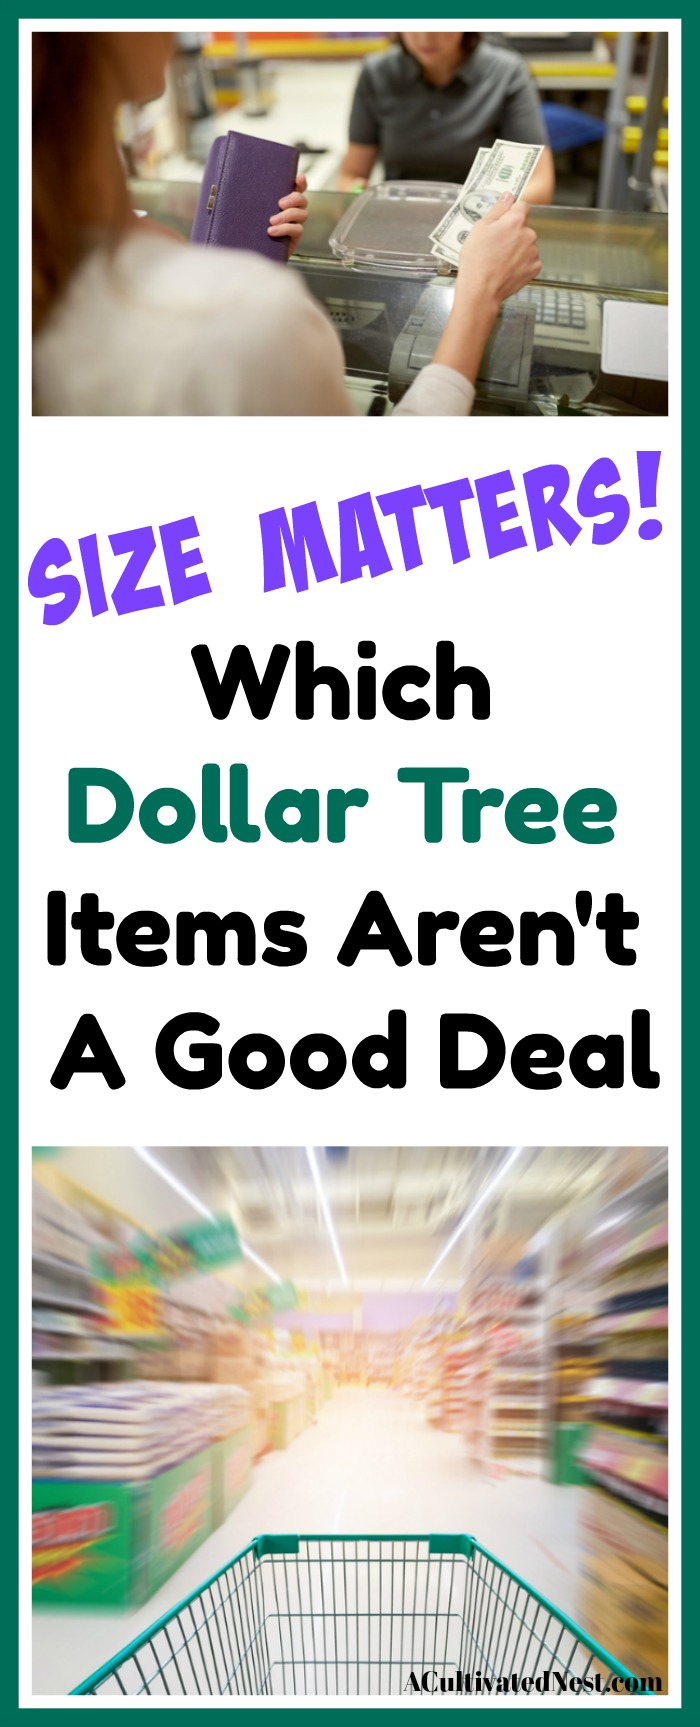 Do you shop at the dollar store? Check out my list to find which Dollar Tree items simply aren't a deal so you can shop smarter! Money Saving Tips, Frugal Living, Living On A Budget, dollar stores #Frugalliving